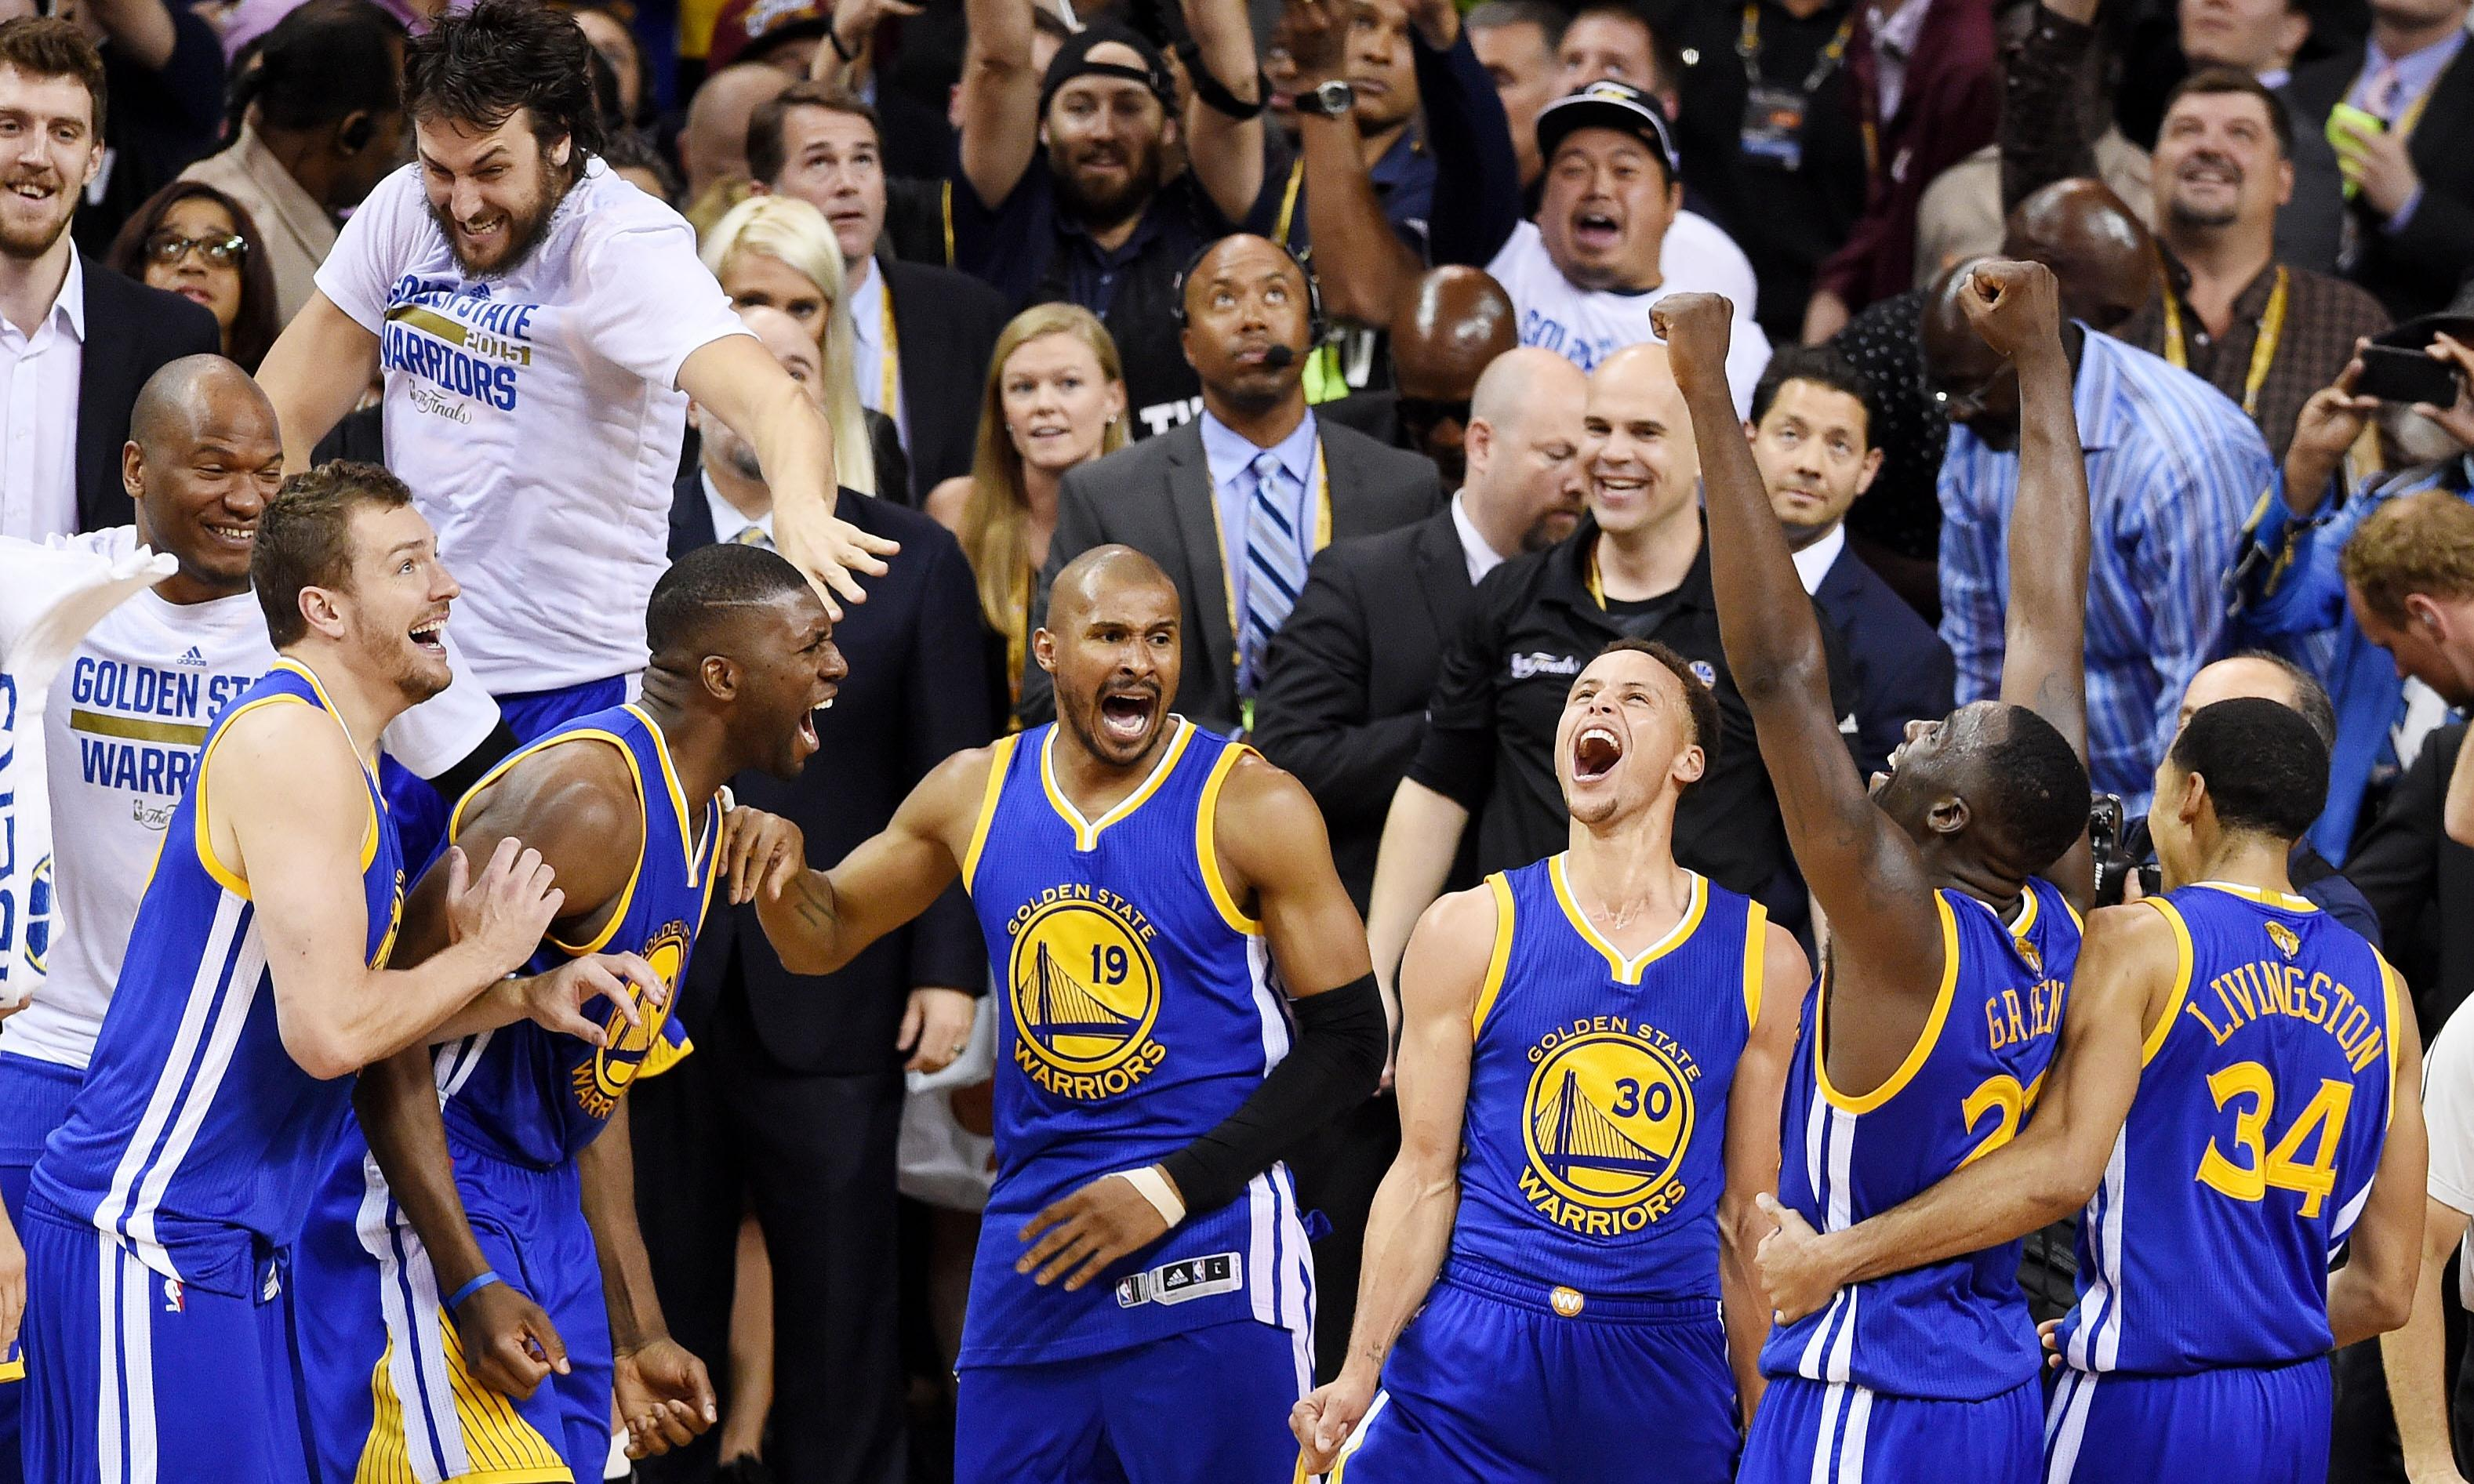 Golden State Warriors crowned NBA champions after easing past tired Cavs | Sport | The Guardian